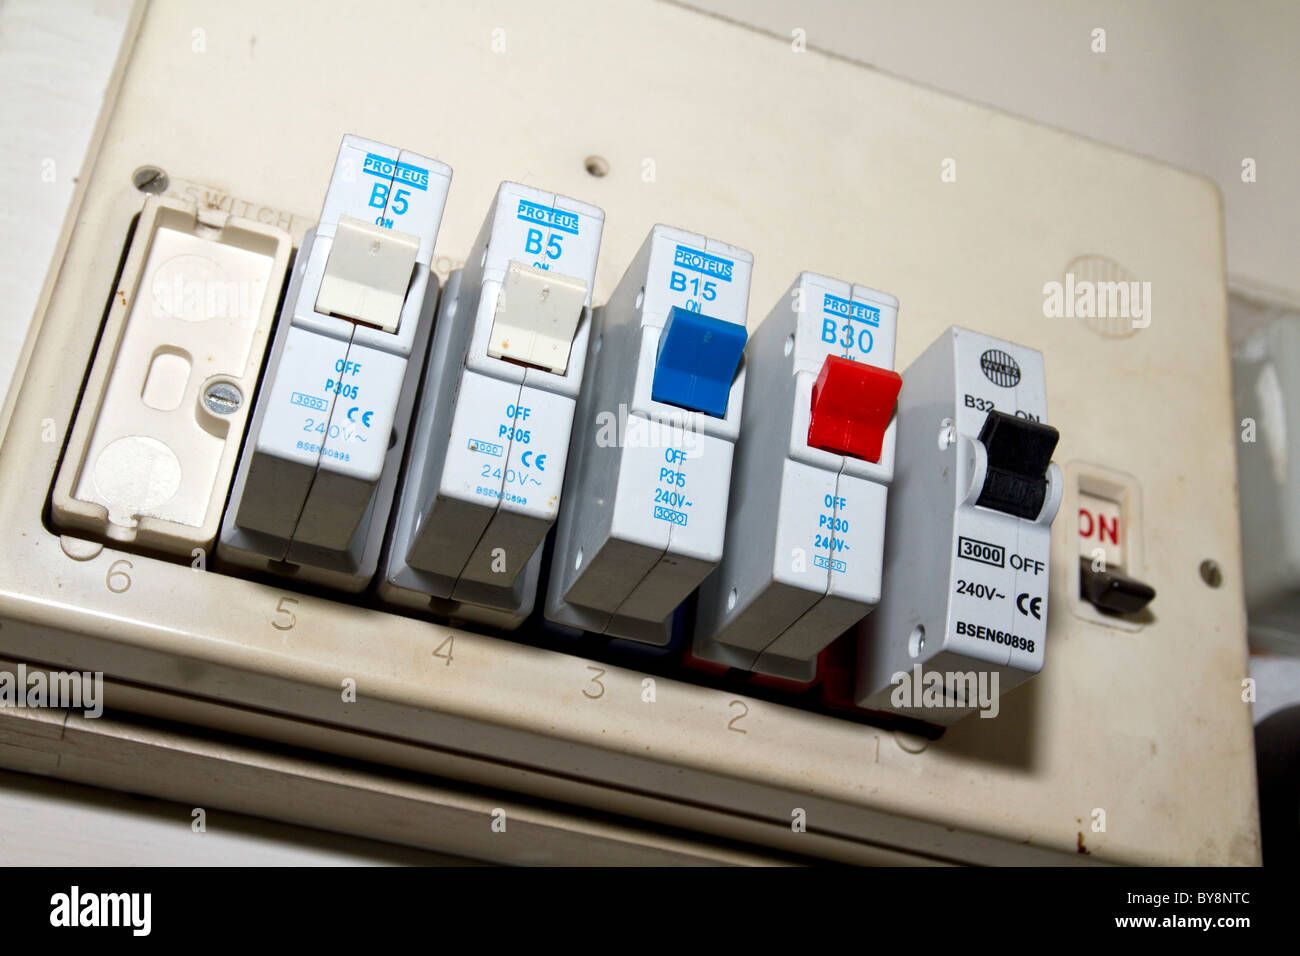 uk old electric fuse box in a london house BY8NTC house fuse box household fuse box wiring diagram \u2022 wiring diagrams electrical fuse box vs circuit breaker at reclaimingppi.co